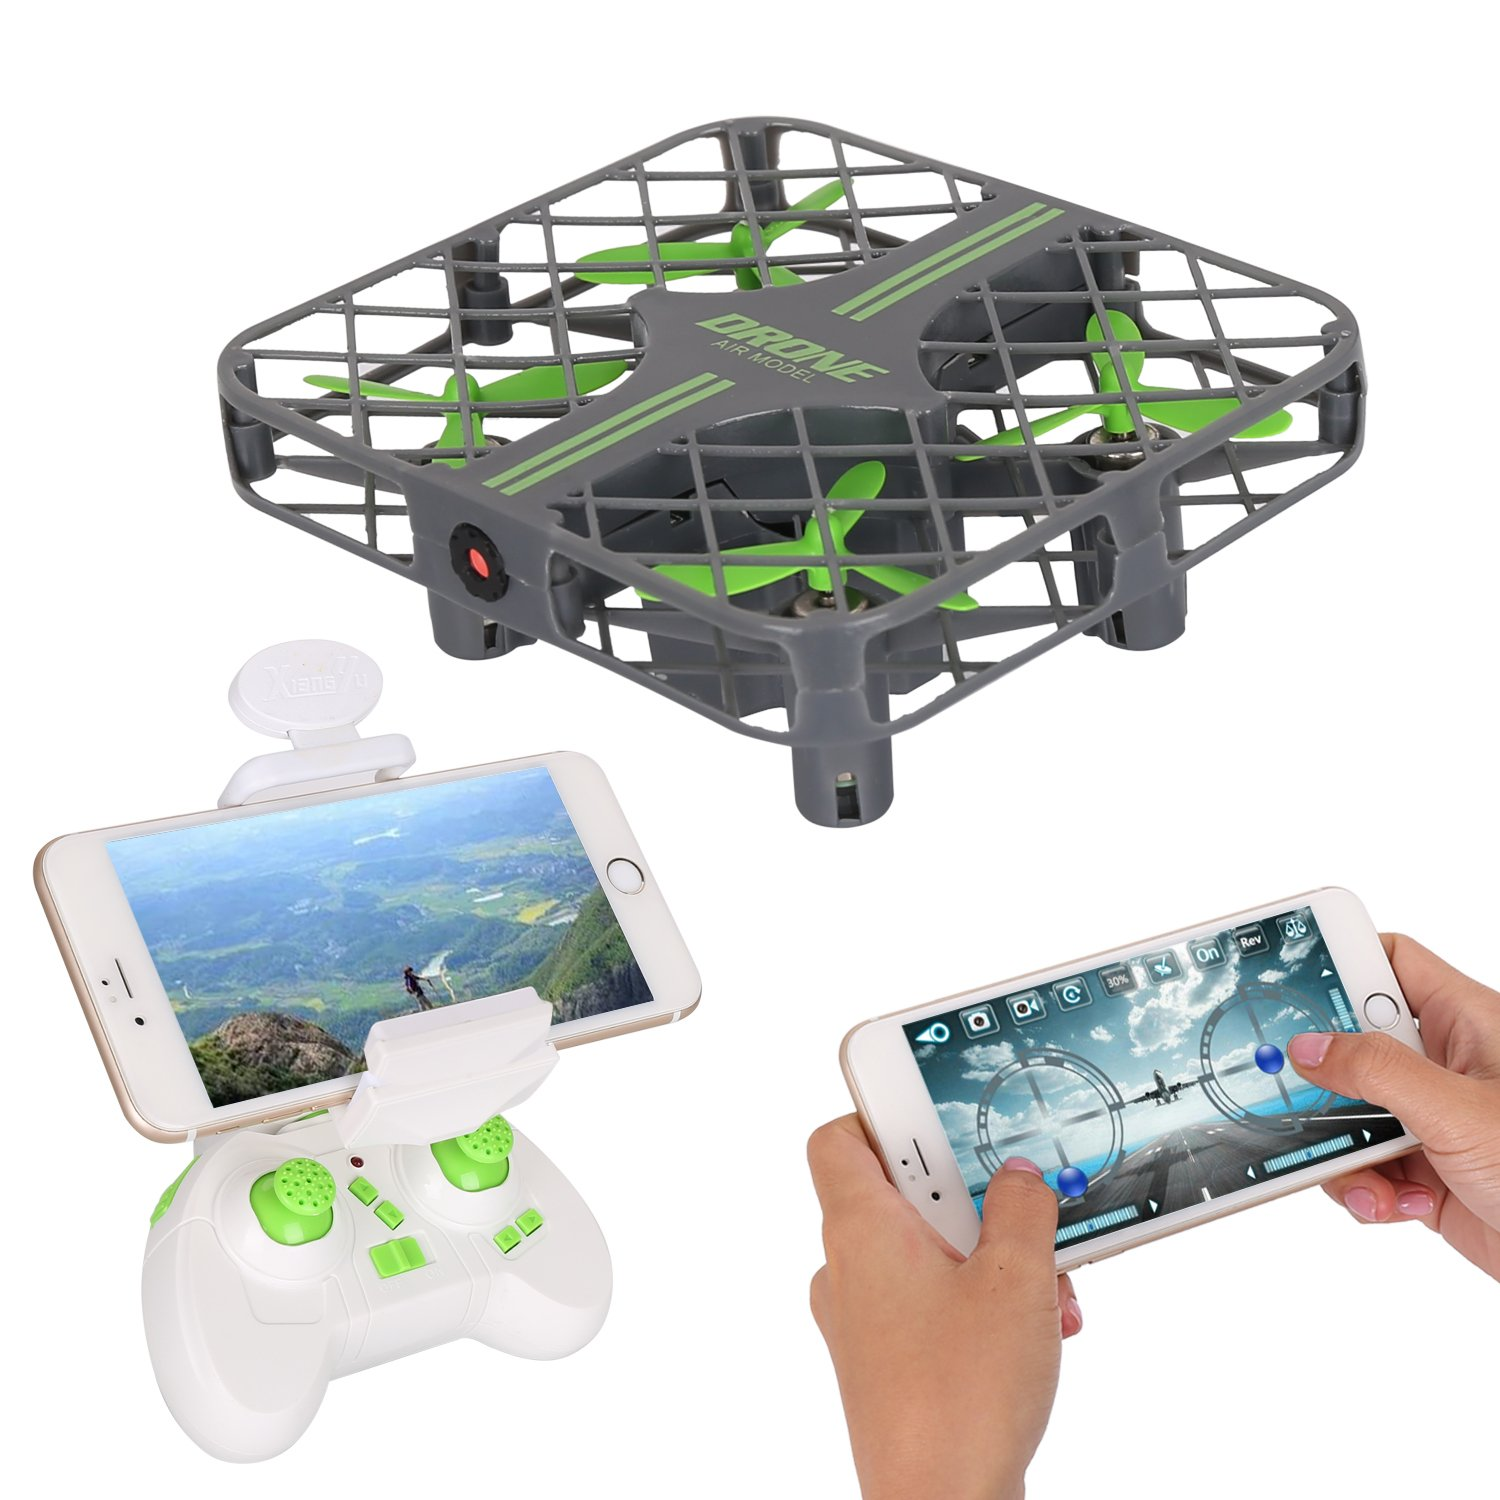 Portable Drone with Camera Live Video JT Drone Quadcopter RC Mini Drone with Led Light,One Key Return,Remote Control Drone for Kids